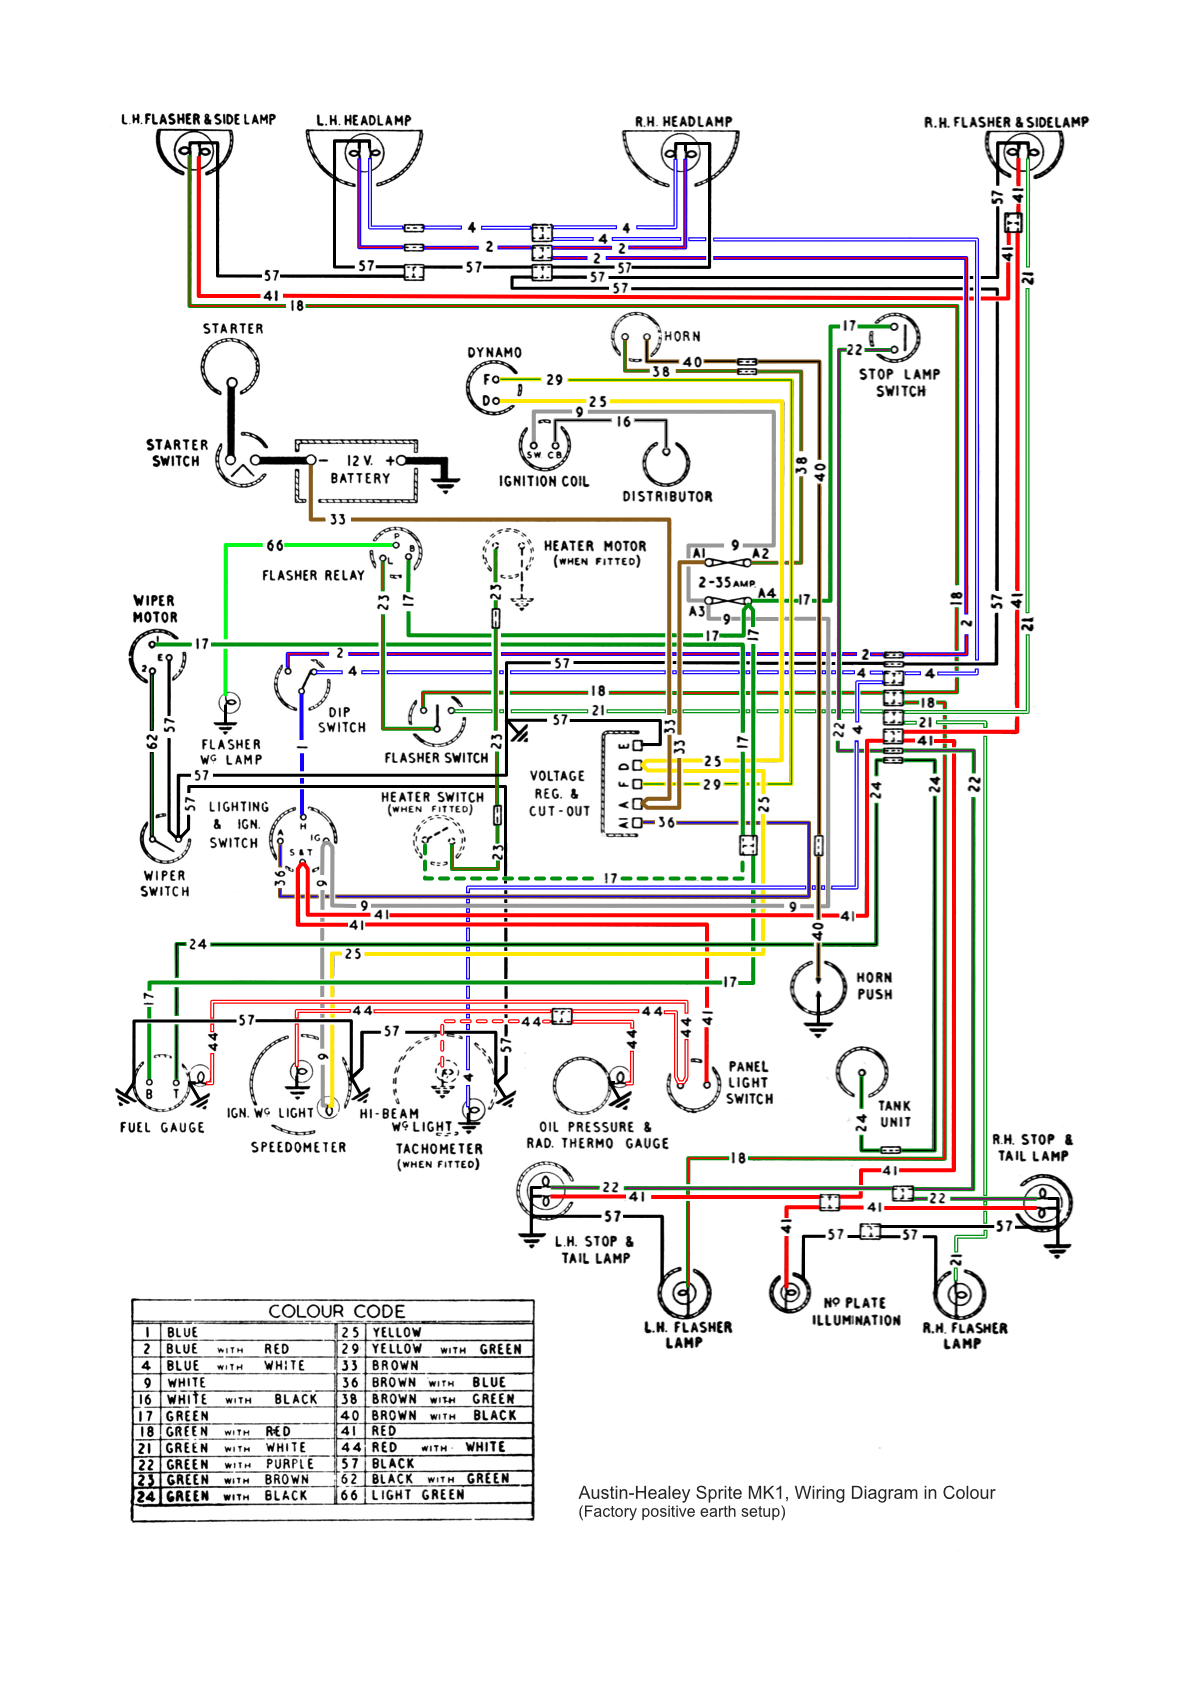 mg wiring diagram circuit diagram templatemgb fuse box diagram wiring libraryhelping a friend with a 59 sprite no power at mgb